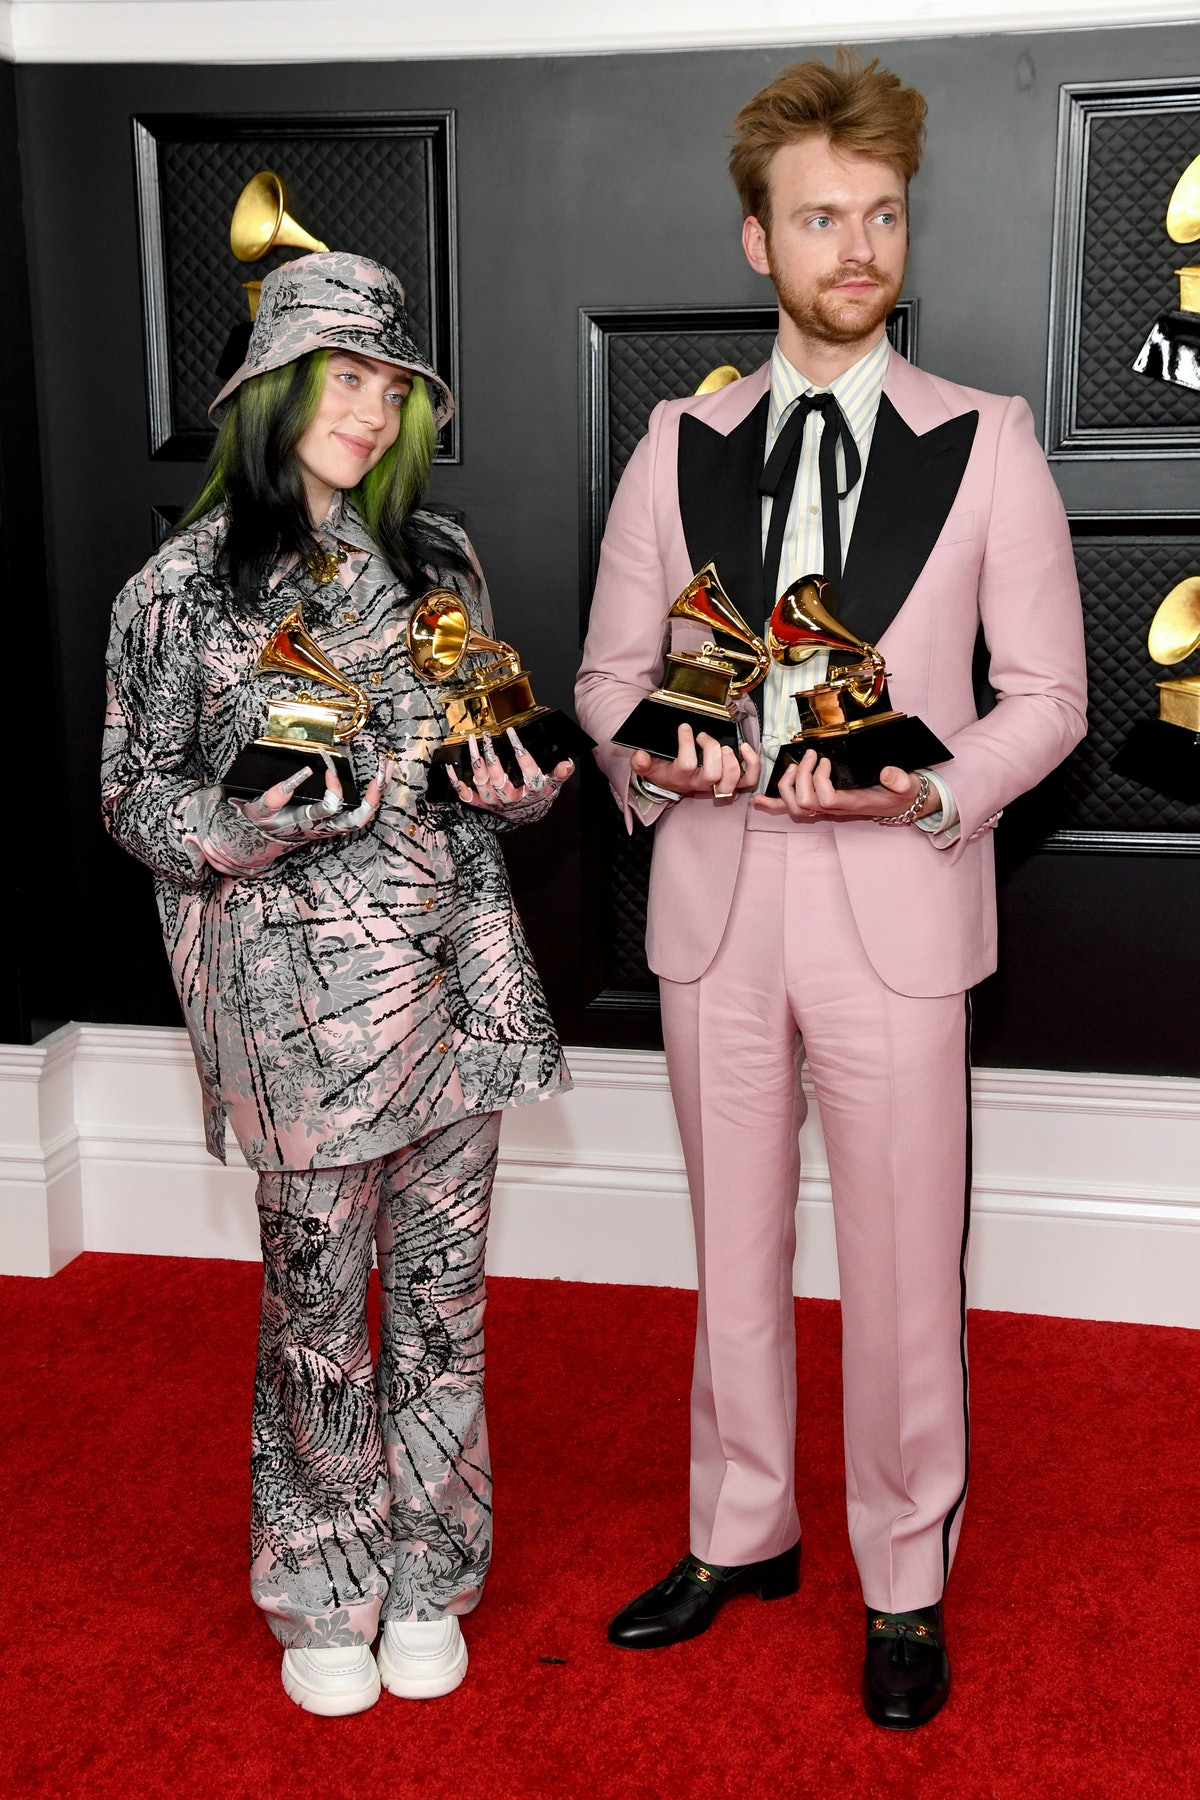 LOS ANGELES, CALIFORNIA - MARCH 14: (L-R) Billie Eilish and FINNEAS, winners of Record of the Year f...